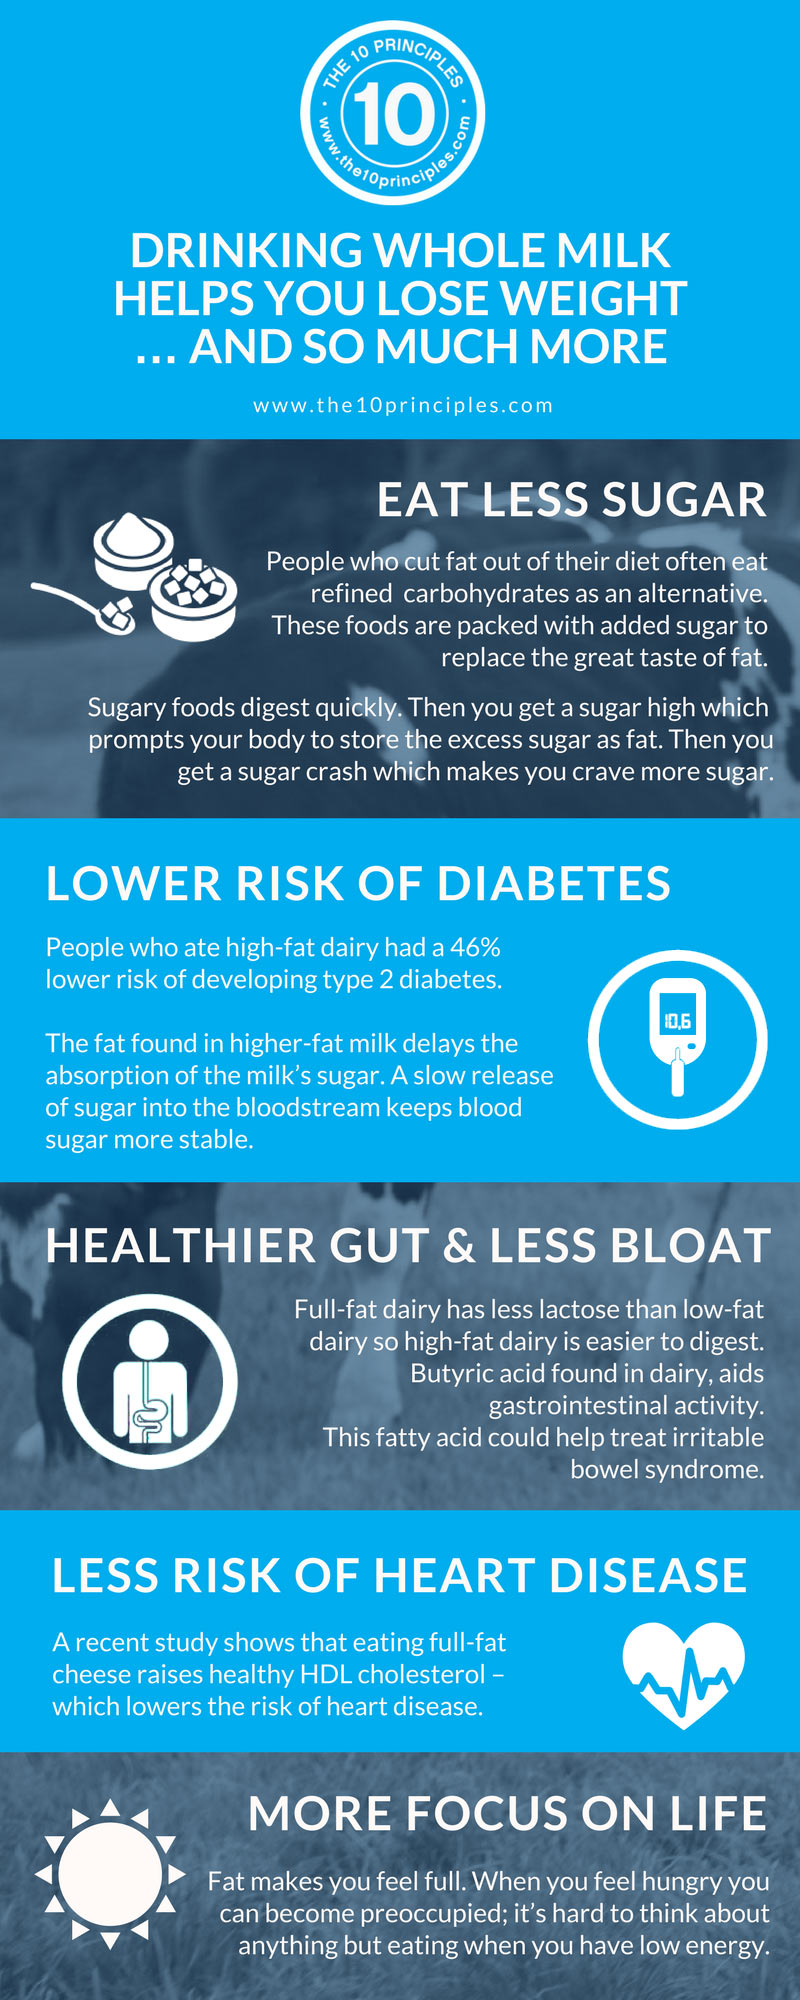 whole milk helps you lose weight - infographic